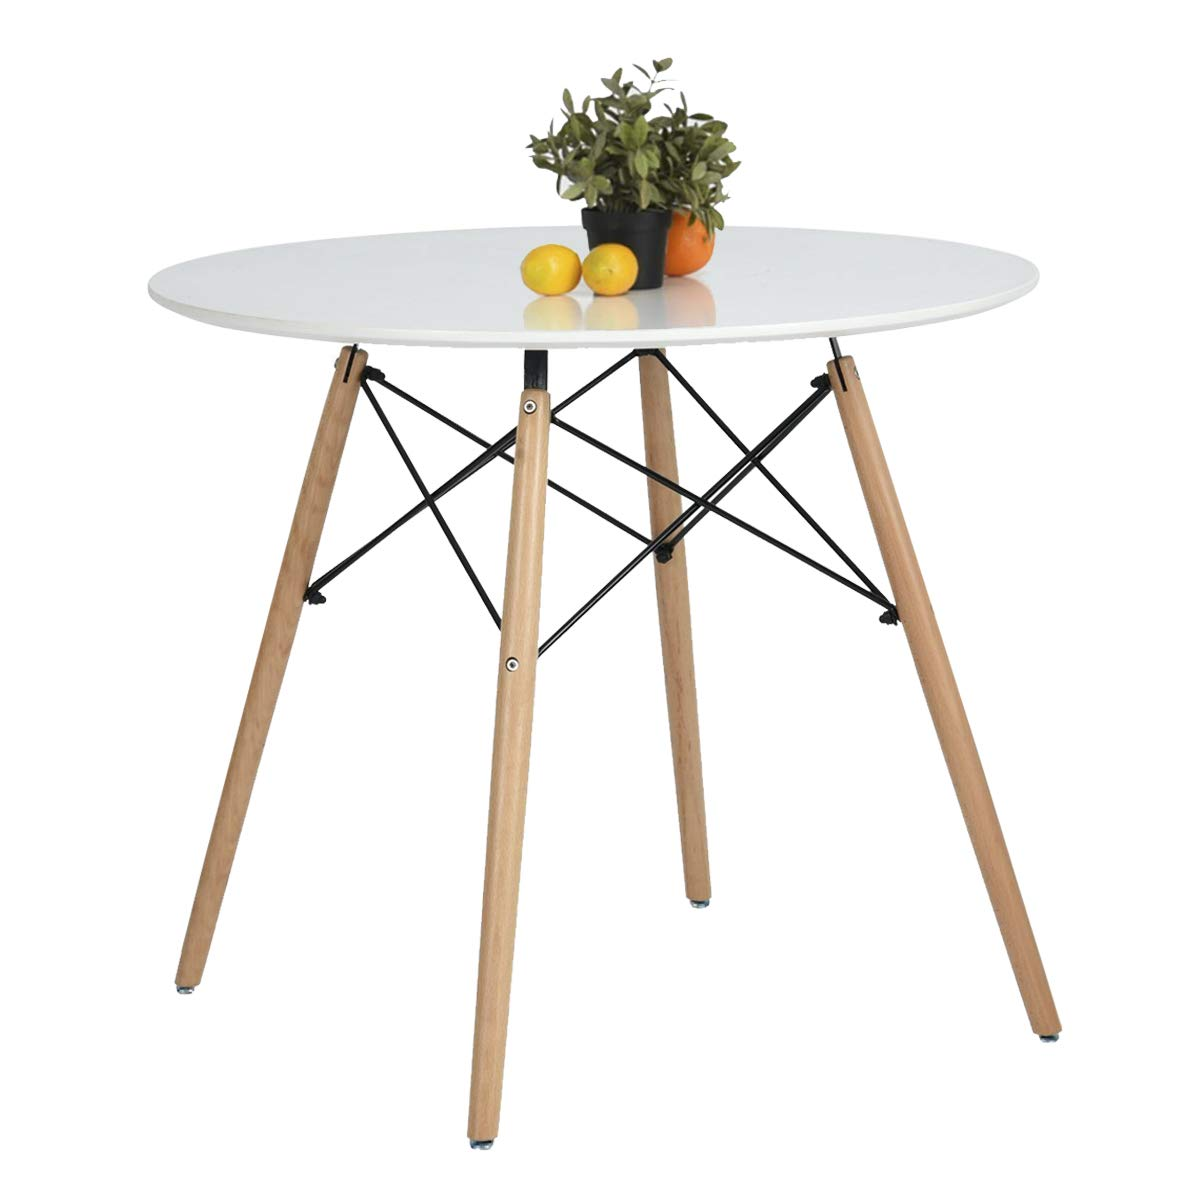 kitchen dining table white round beech wood legs foot pad screw dol accent with stock ture trestle bench seat west elm desk chair slim end bathroom slippers gold floor lamp thin